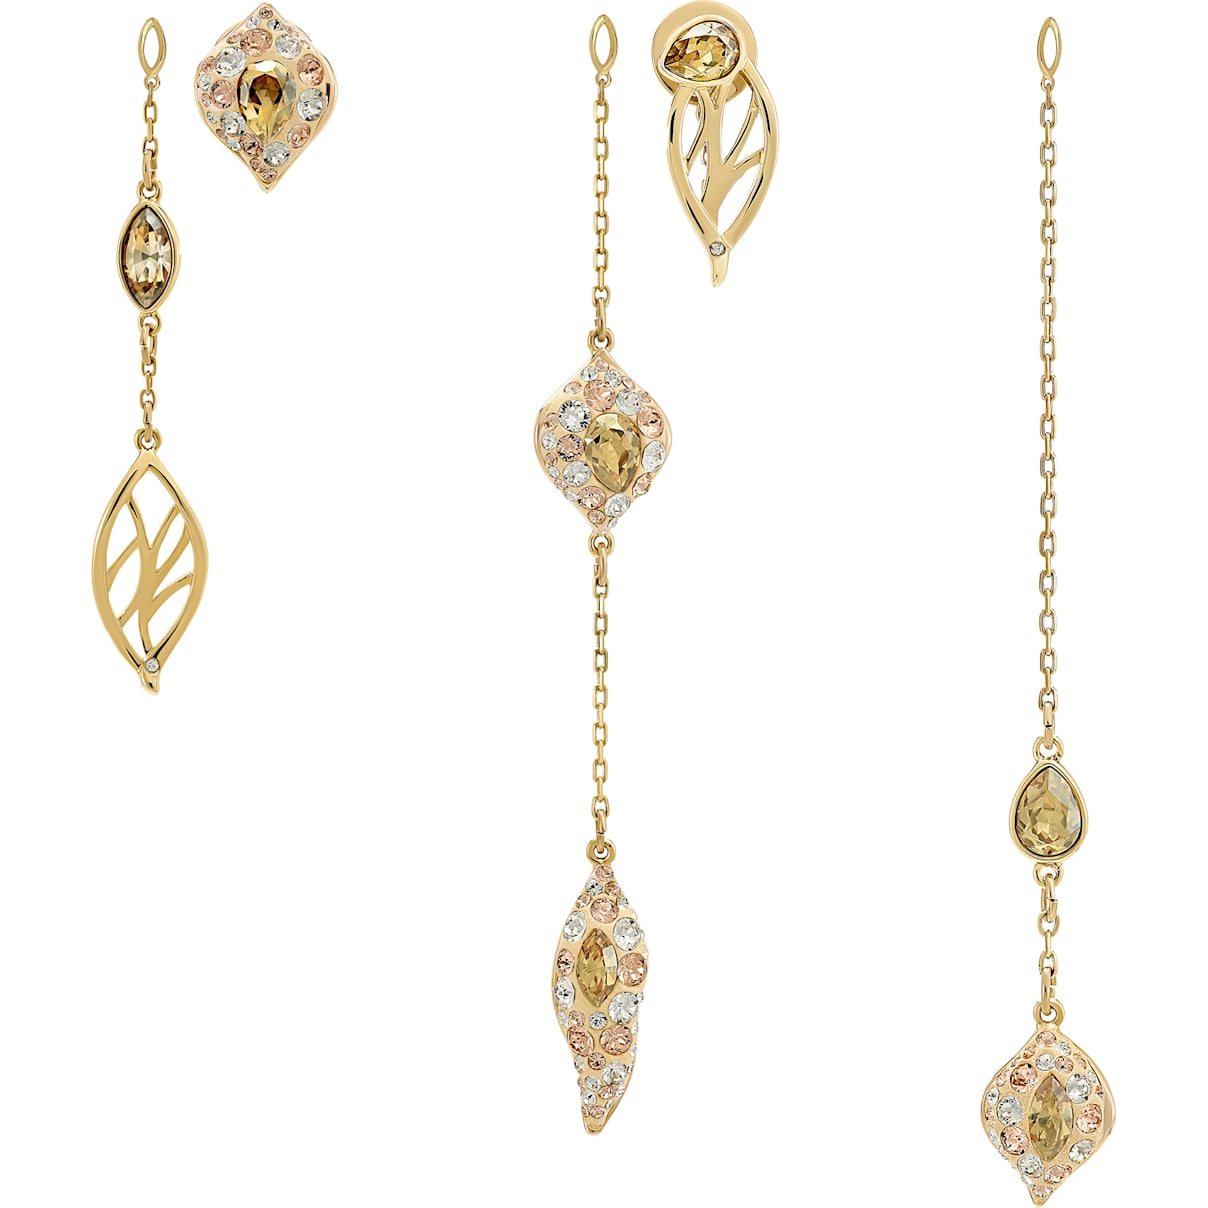 Swarovski Graceful Bloom Multi Drop Earrings, Brown, Gold-tone plated